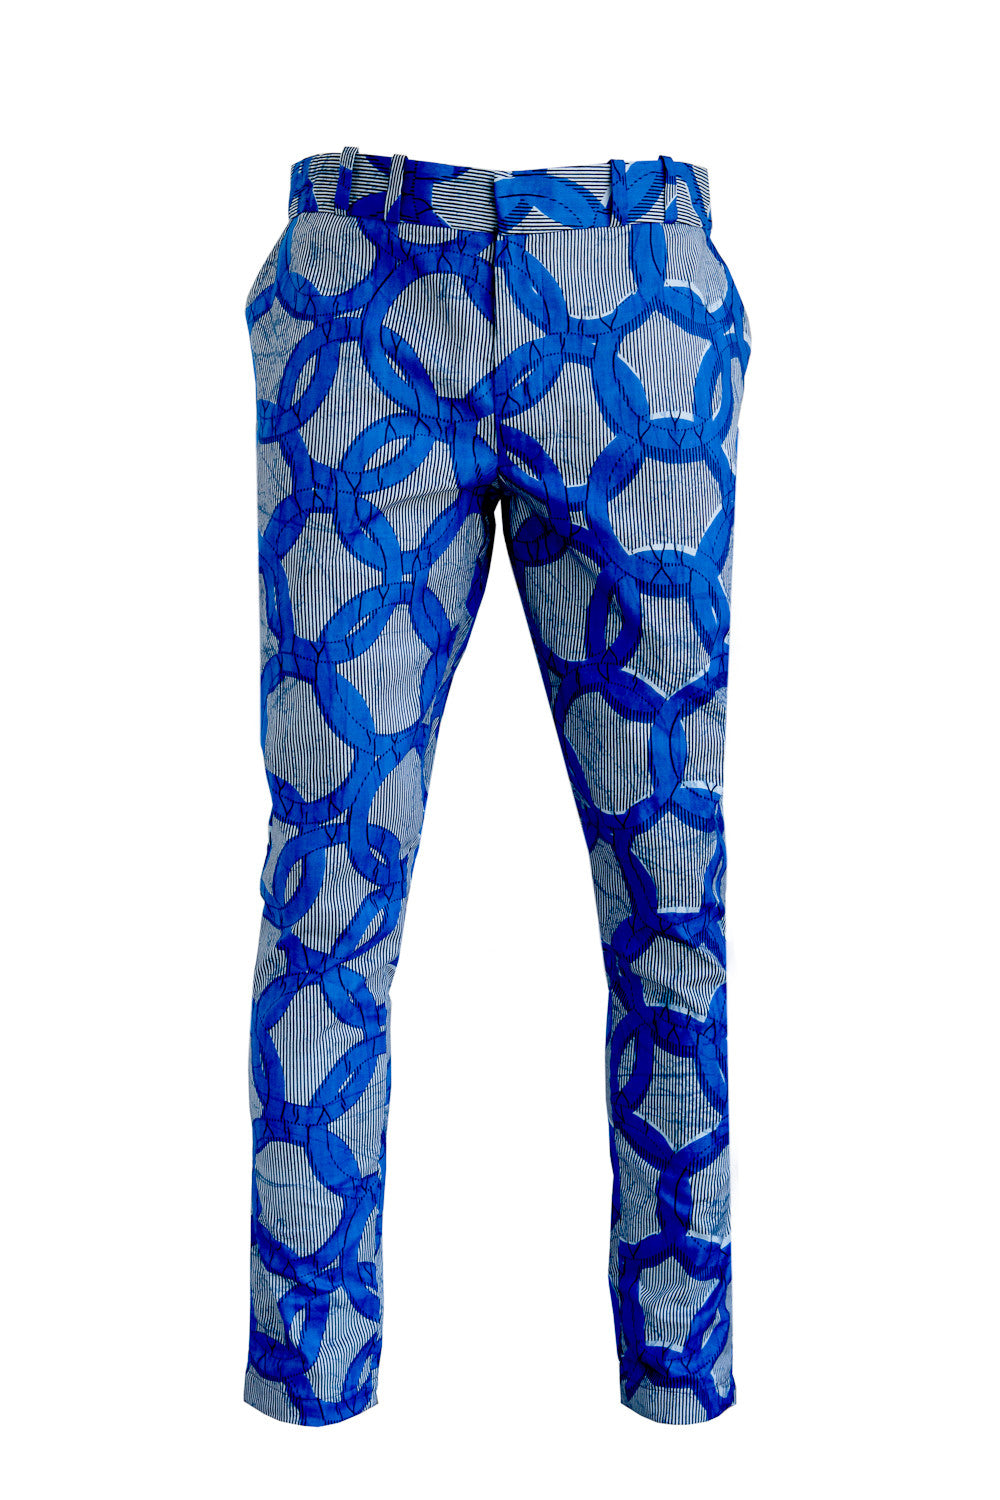 Men's skinny leg trousers - OHEMA OHENE AFRICAN INSPIRED FASHION  - 1